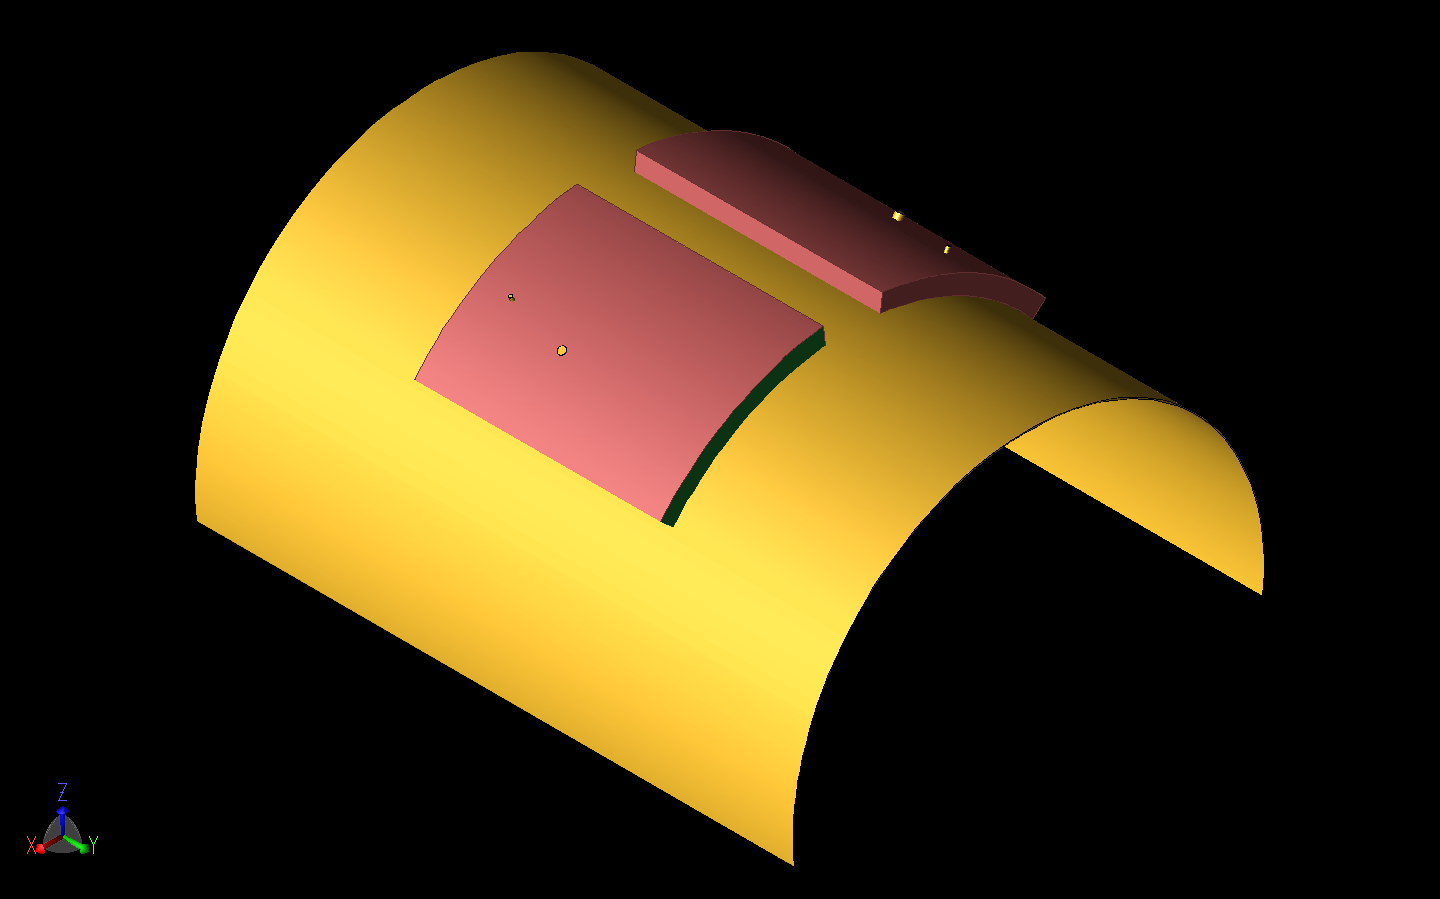 Figure 16: The MIMO array from Figure 11b is shown curved around a cylinder of radius 40 mm about the Y axis.